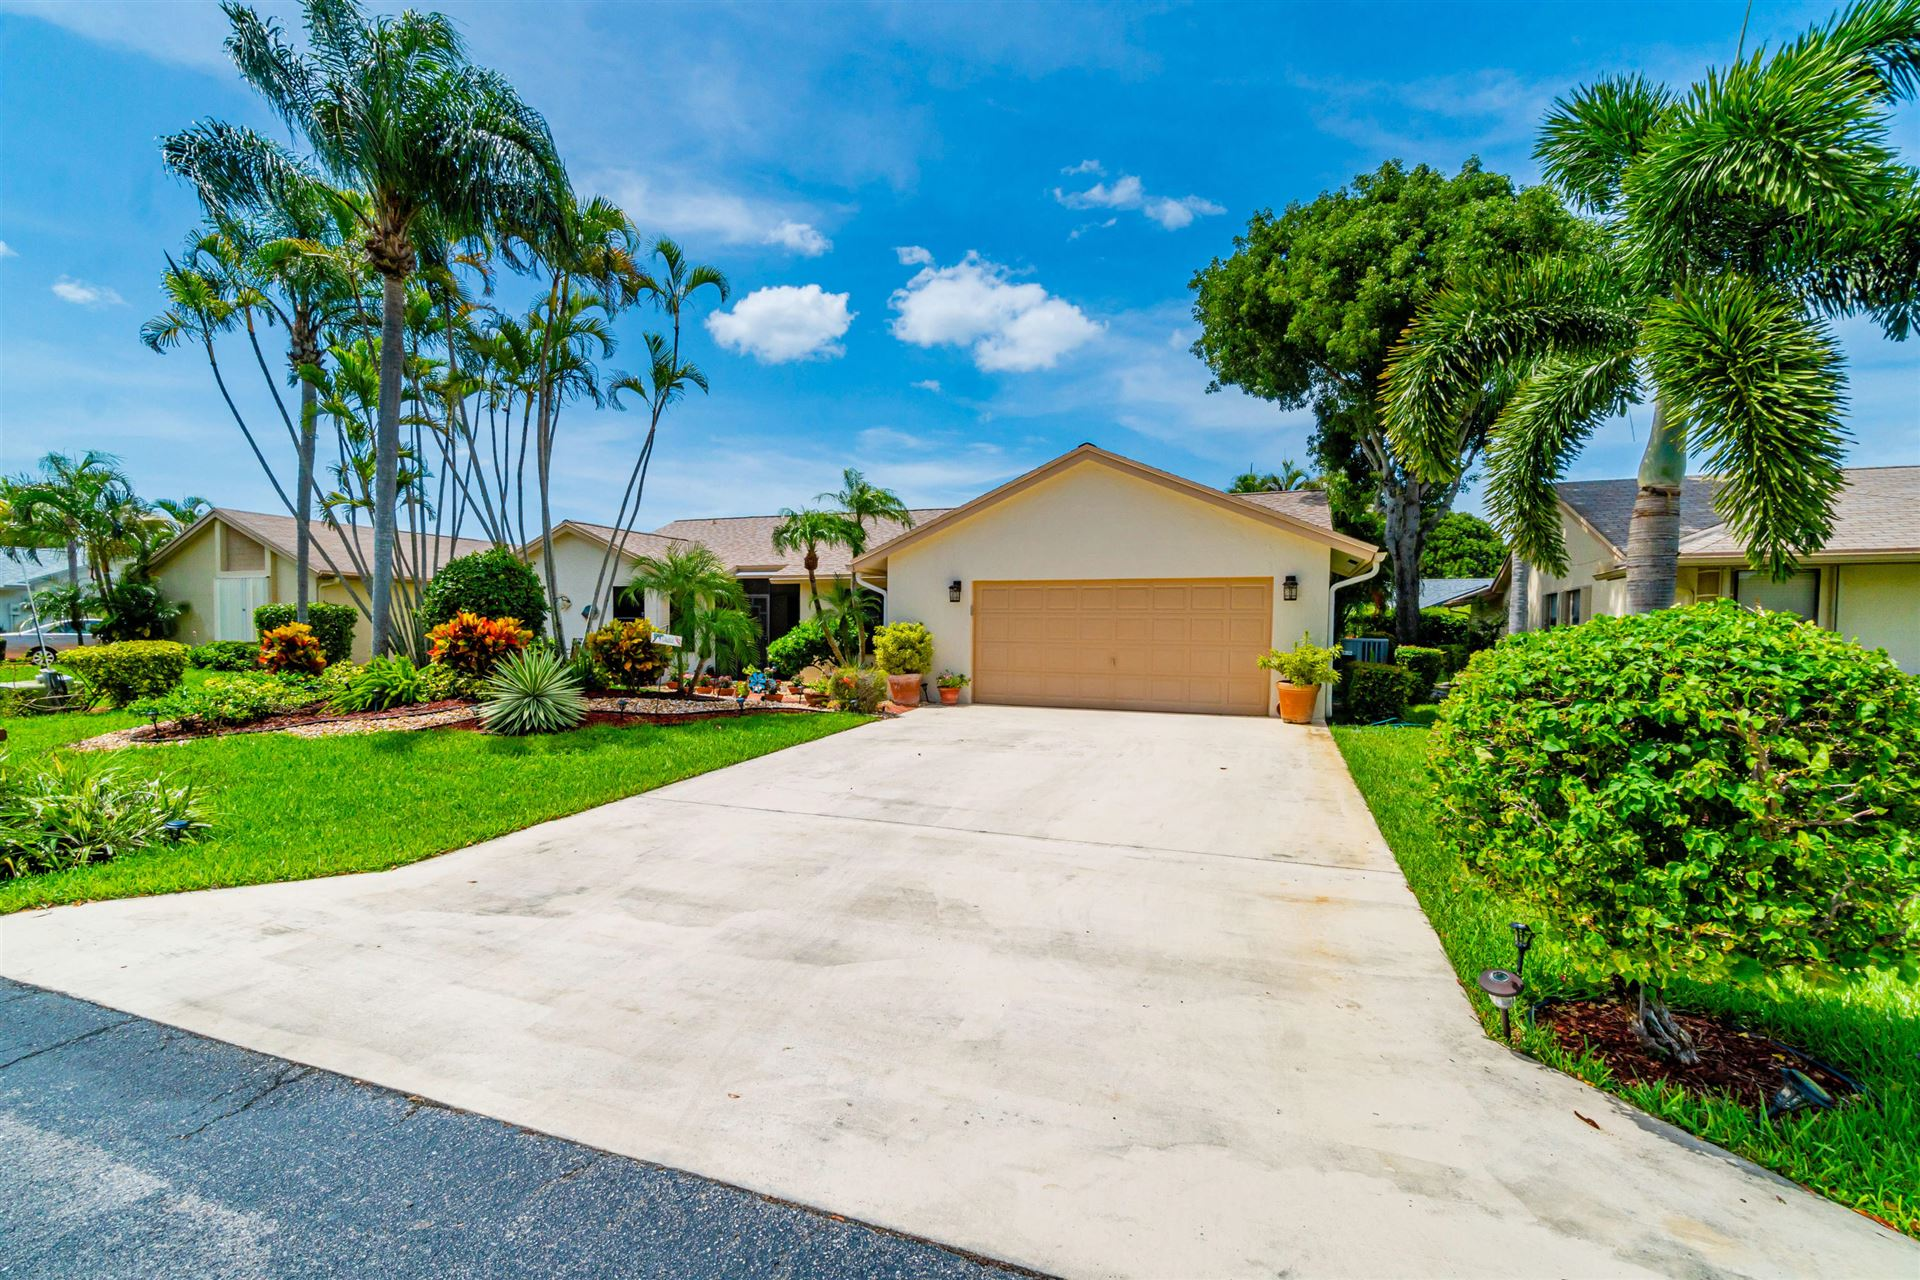 3155 NW 14th Street, Delray Beach, FL 33445 - #: RX-10638387